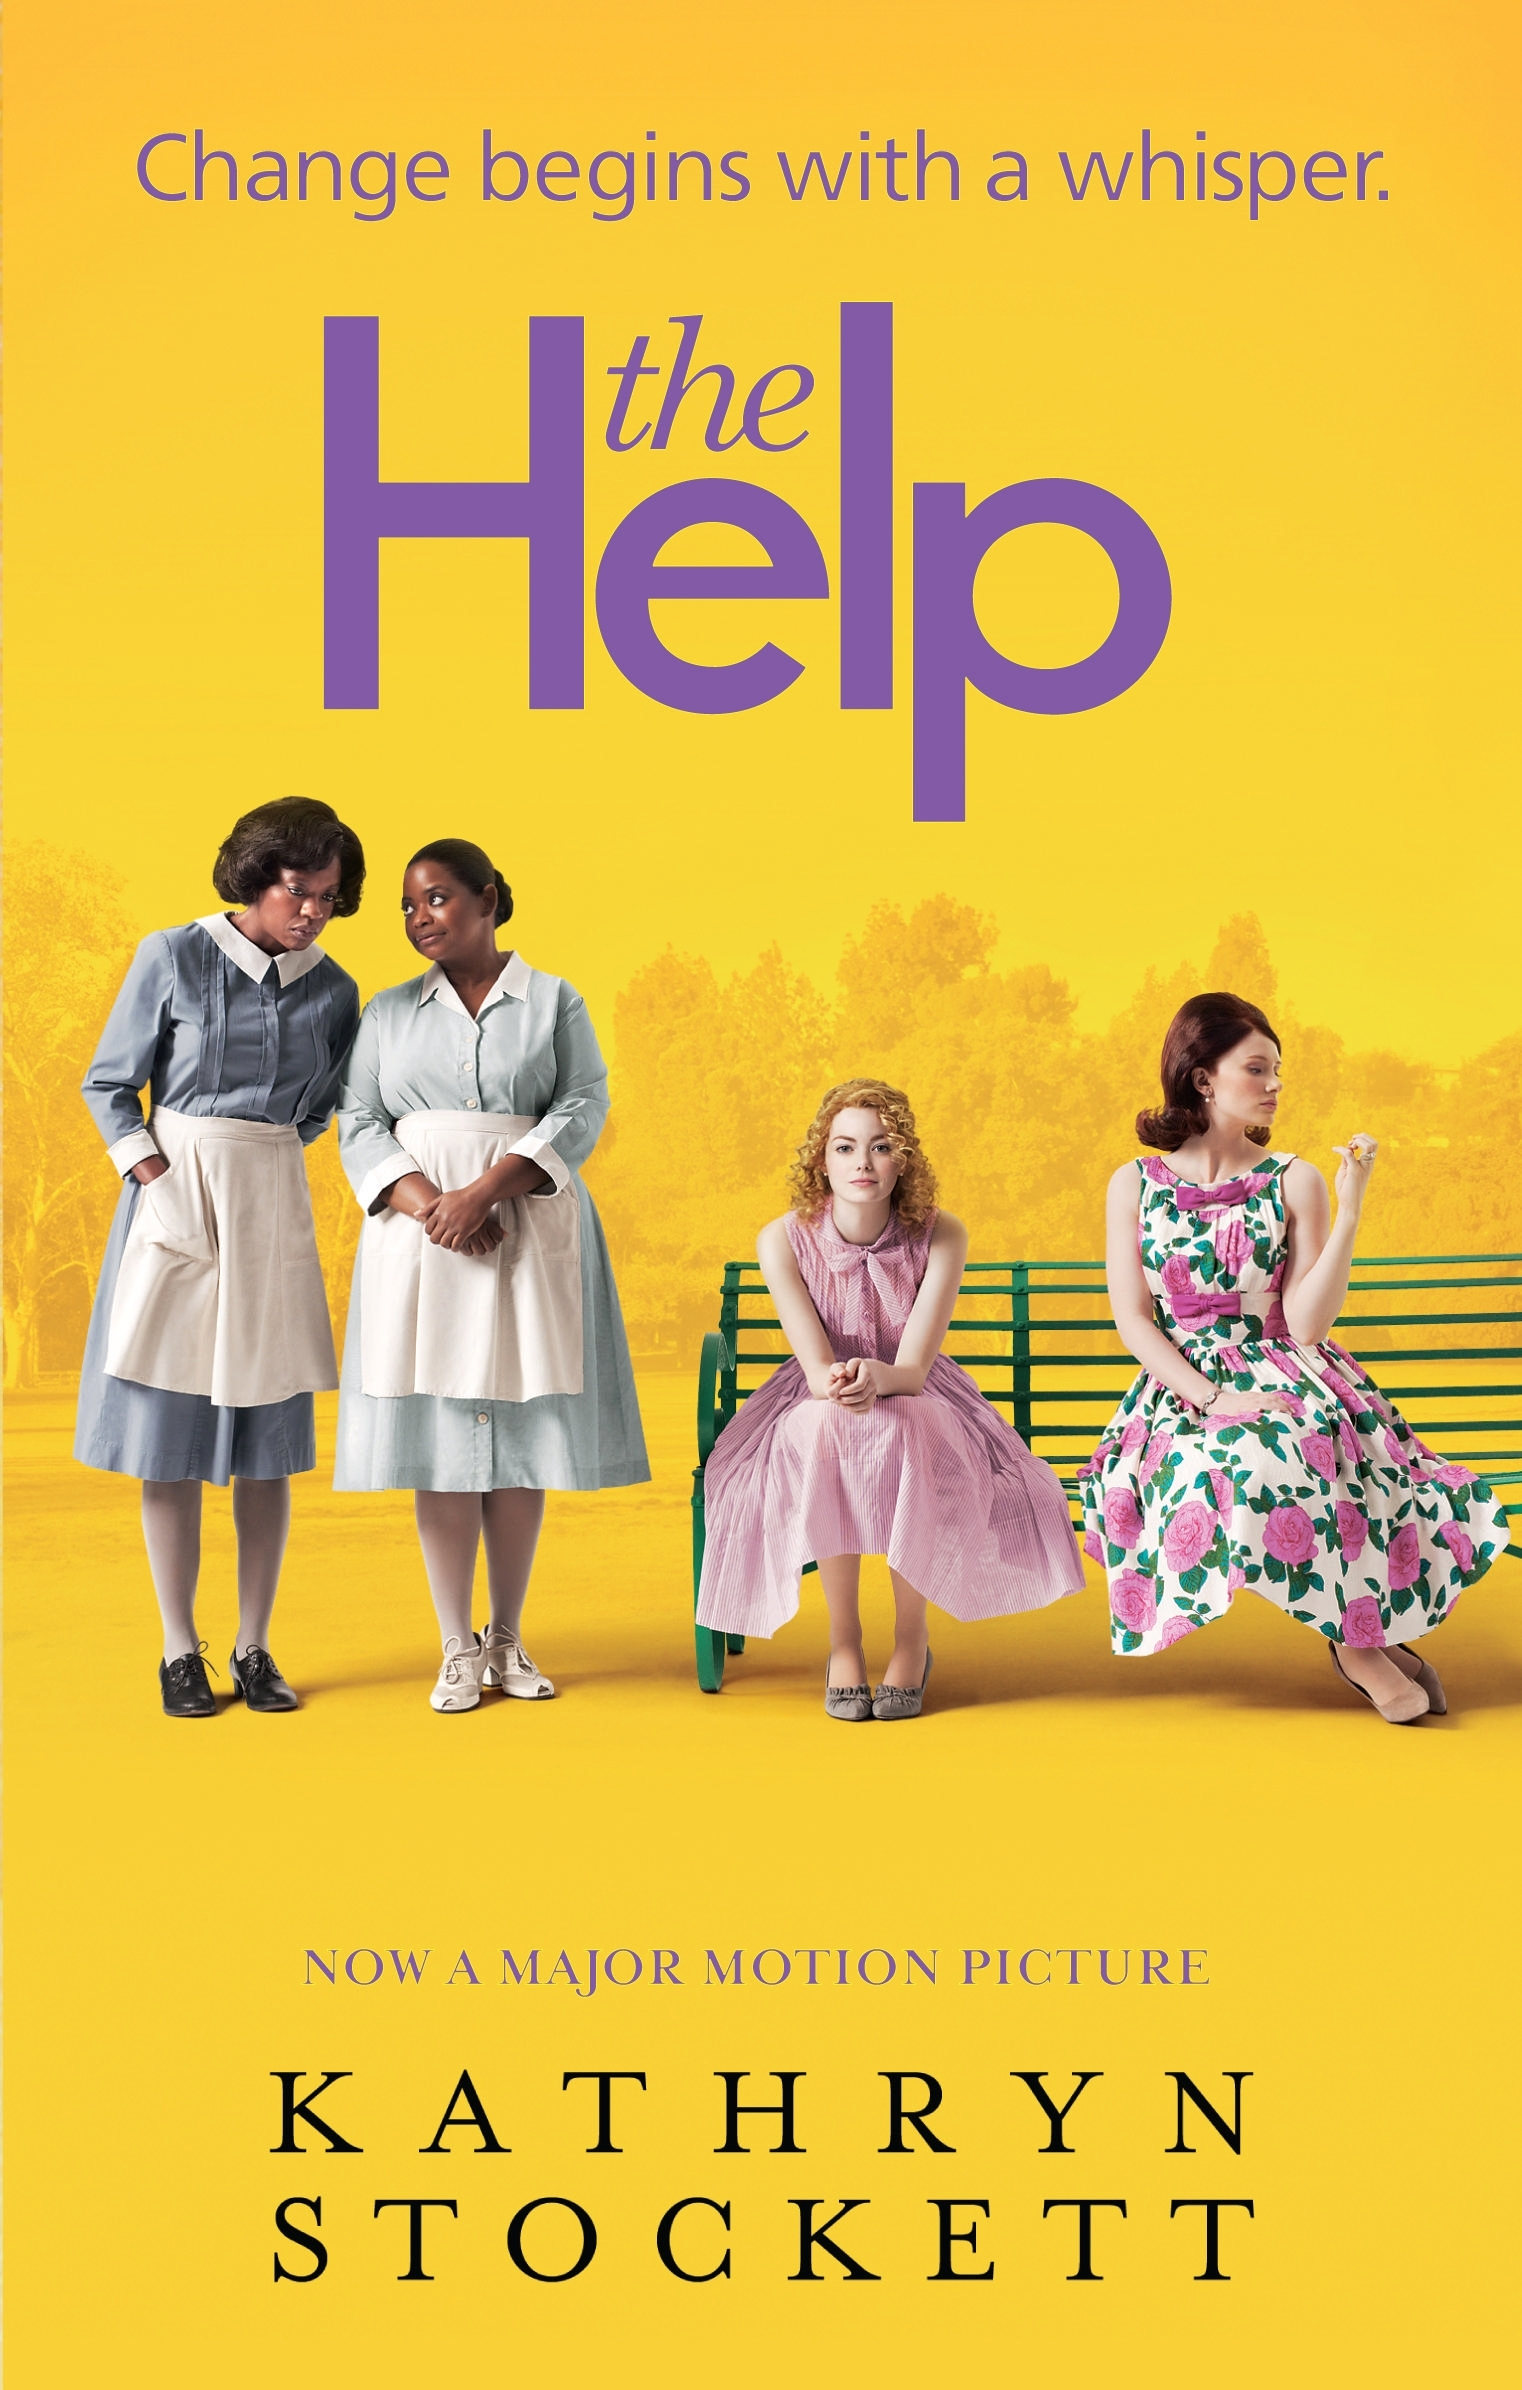 The help by kathryn stockett essay u recommendation